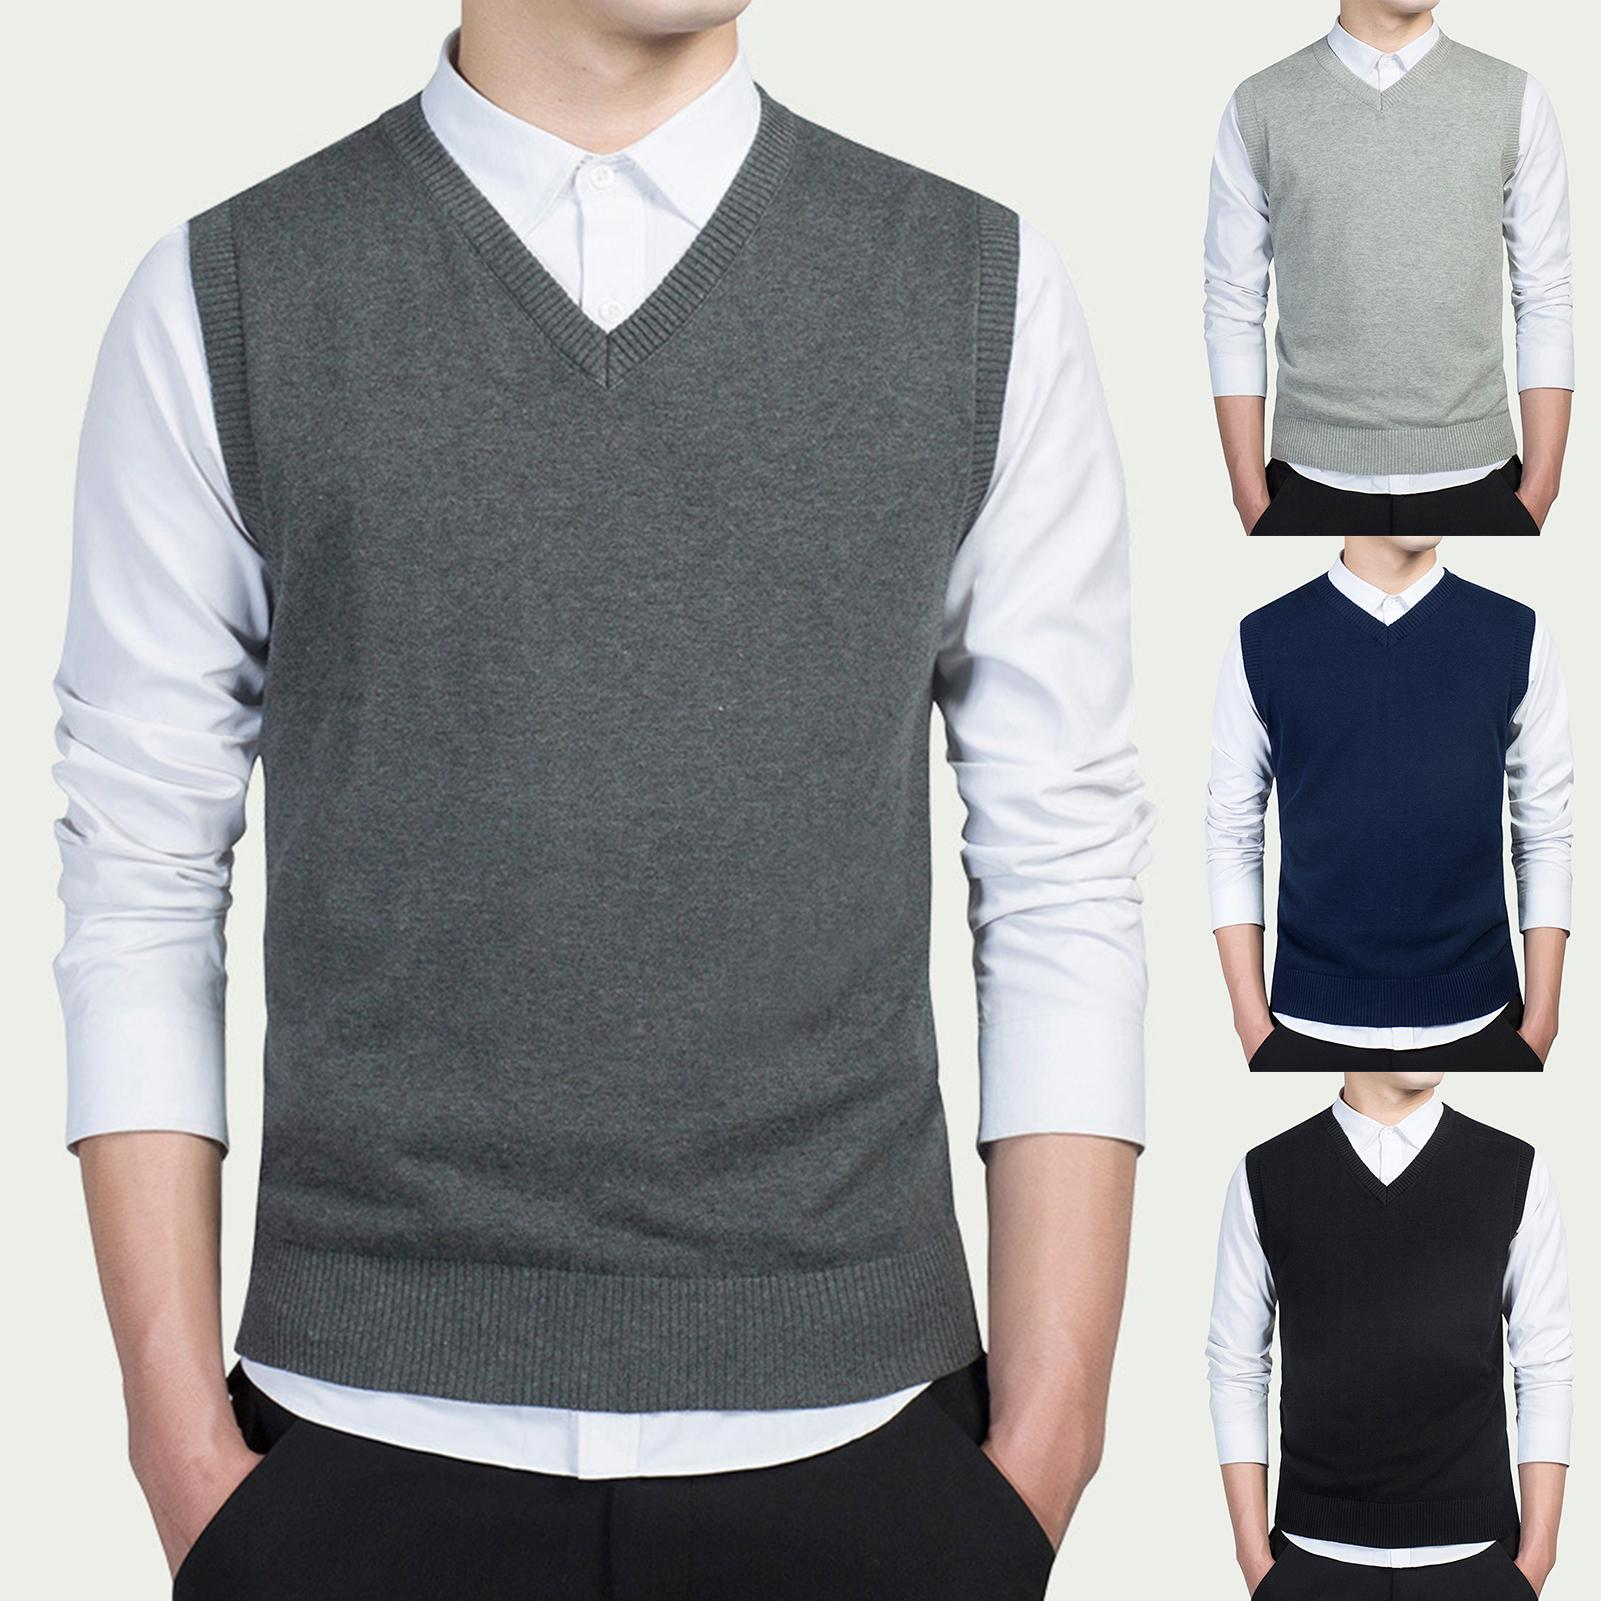 2020 New Arrival Solid Color Sweater Vest Men Cashmere Sweaters Wool Pullover Men V-Neck Sleeveless Jersey Hombre